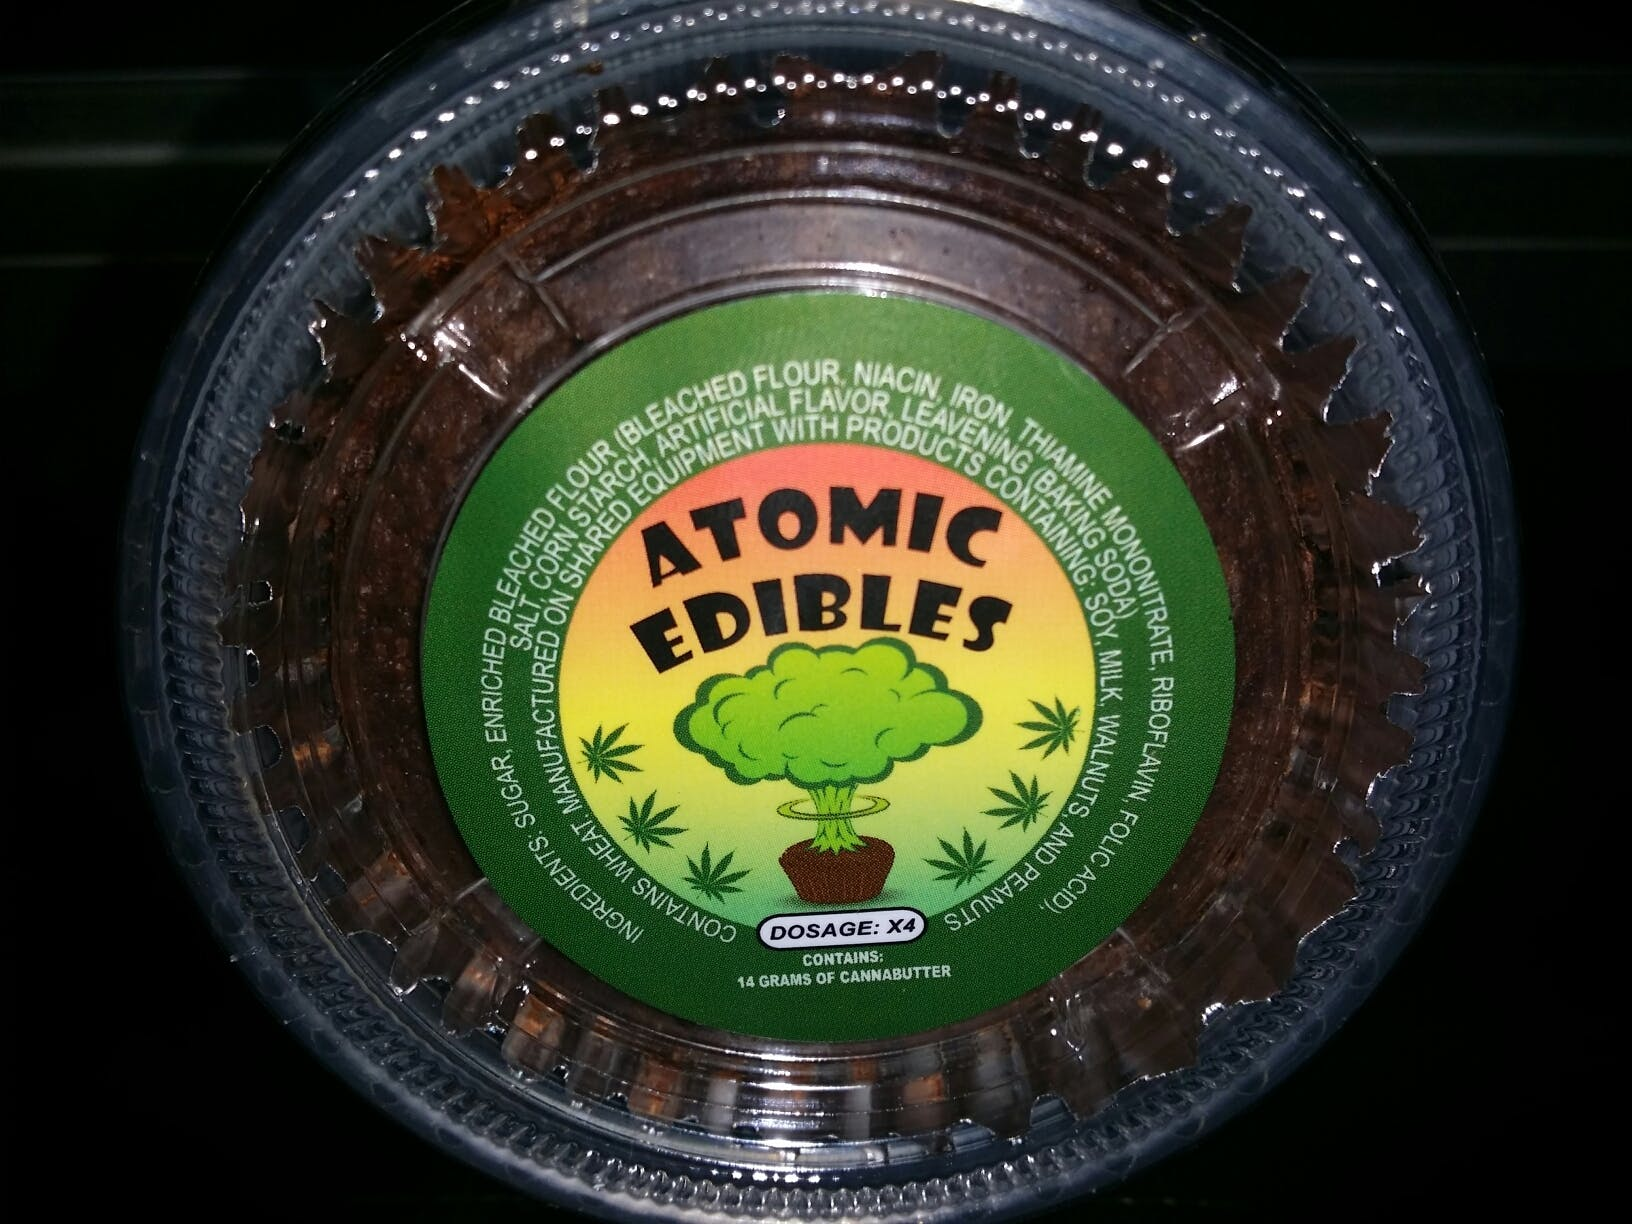 edible-atomic-edibles-14-grams-cannabutter